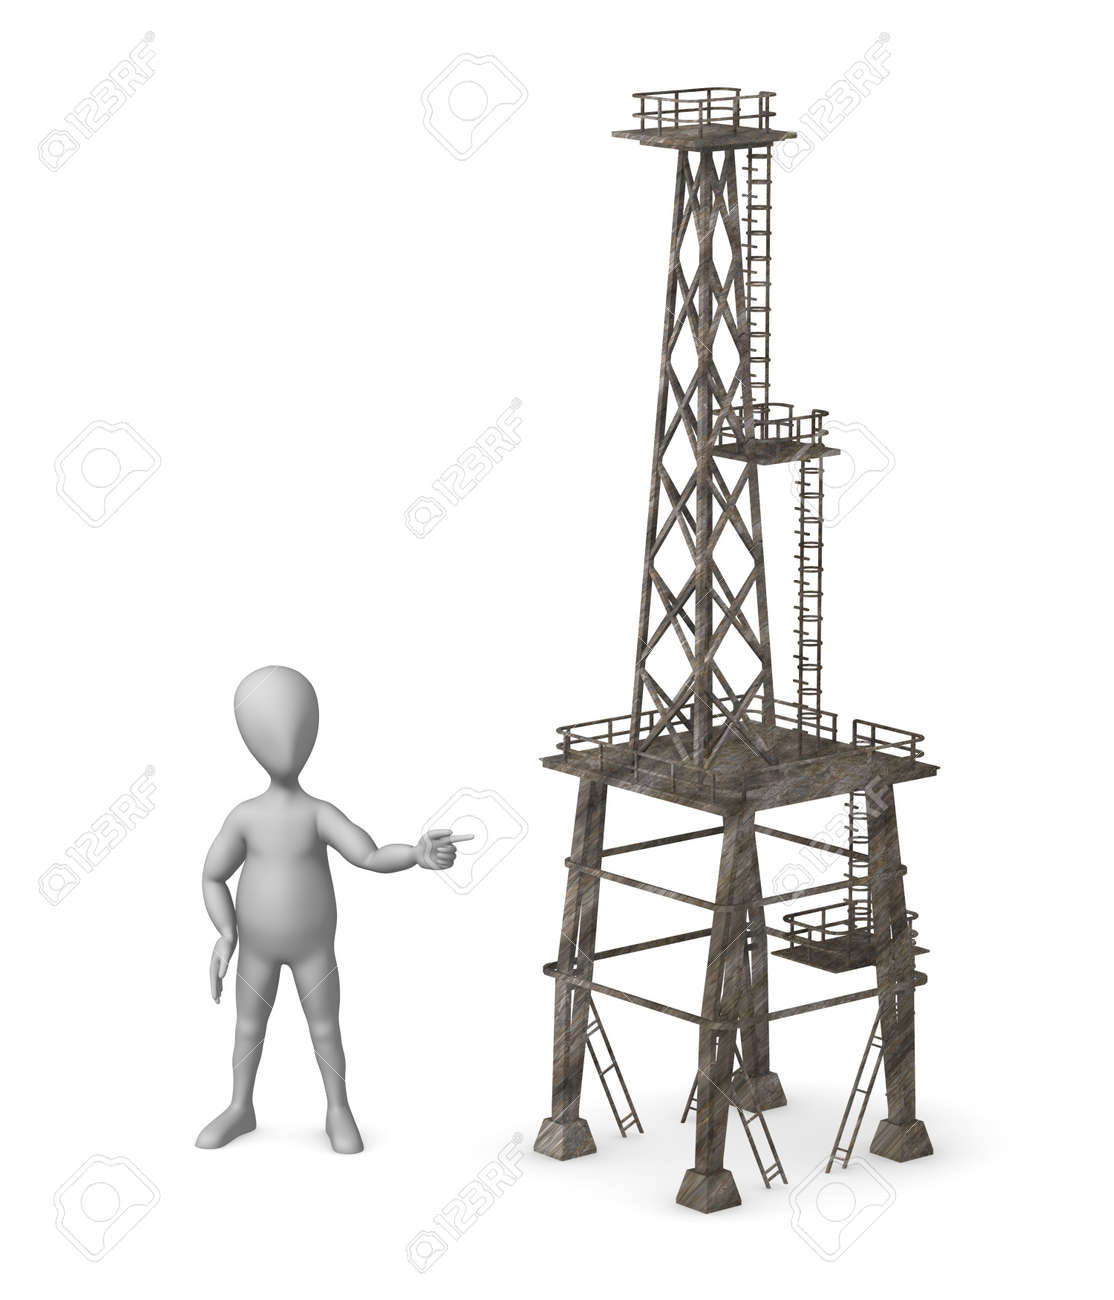 3d render of cartoon character with industrial element Stock Photo - 12985248